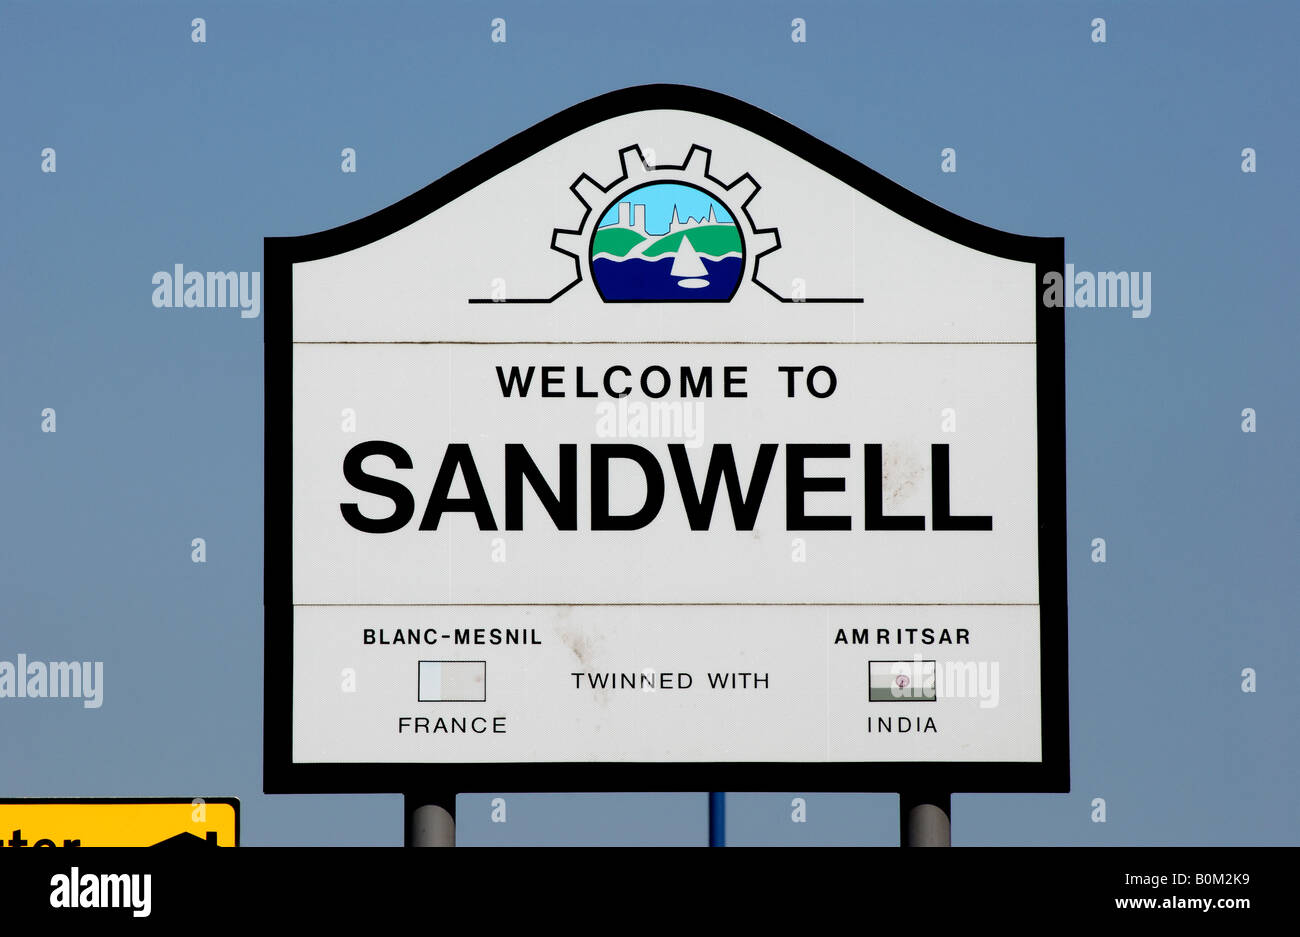 Welcome to Sandwell sign, West Midlands, England, UK - Stock Image